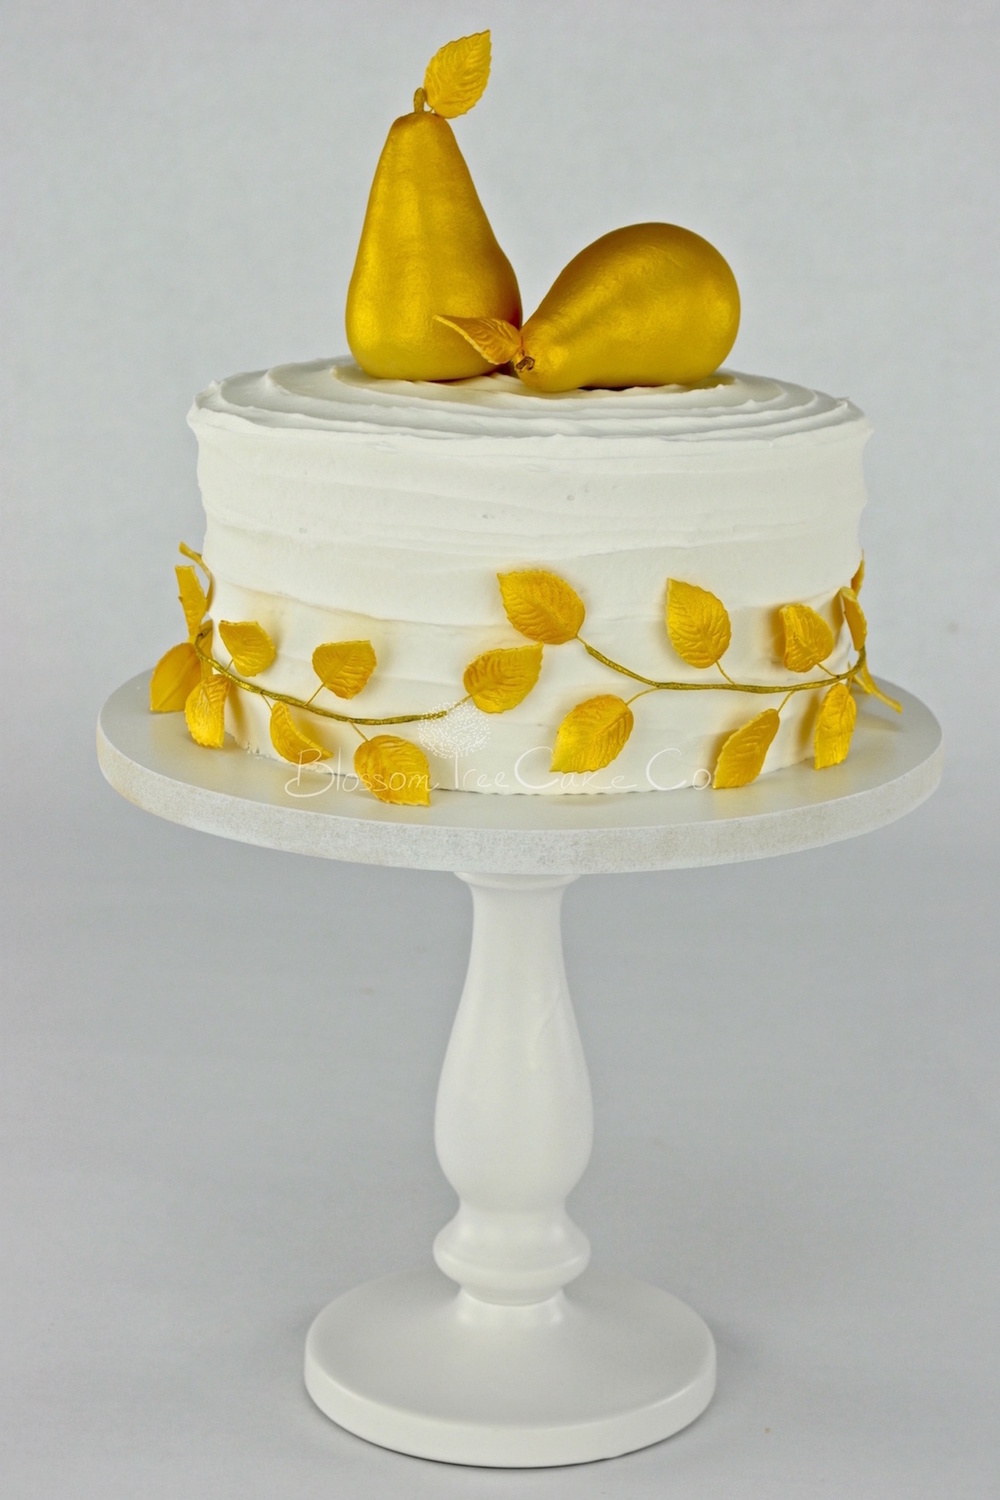 Gold Pears celebration cake by Blossom Tree Cake Co Harrogate North Yorkshire.jpg